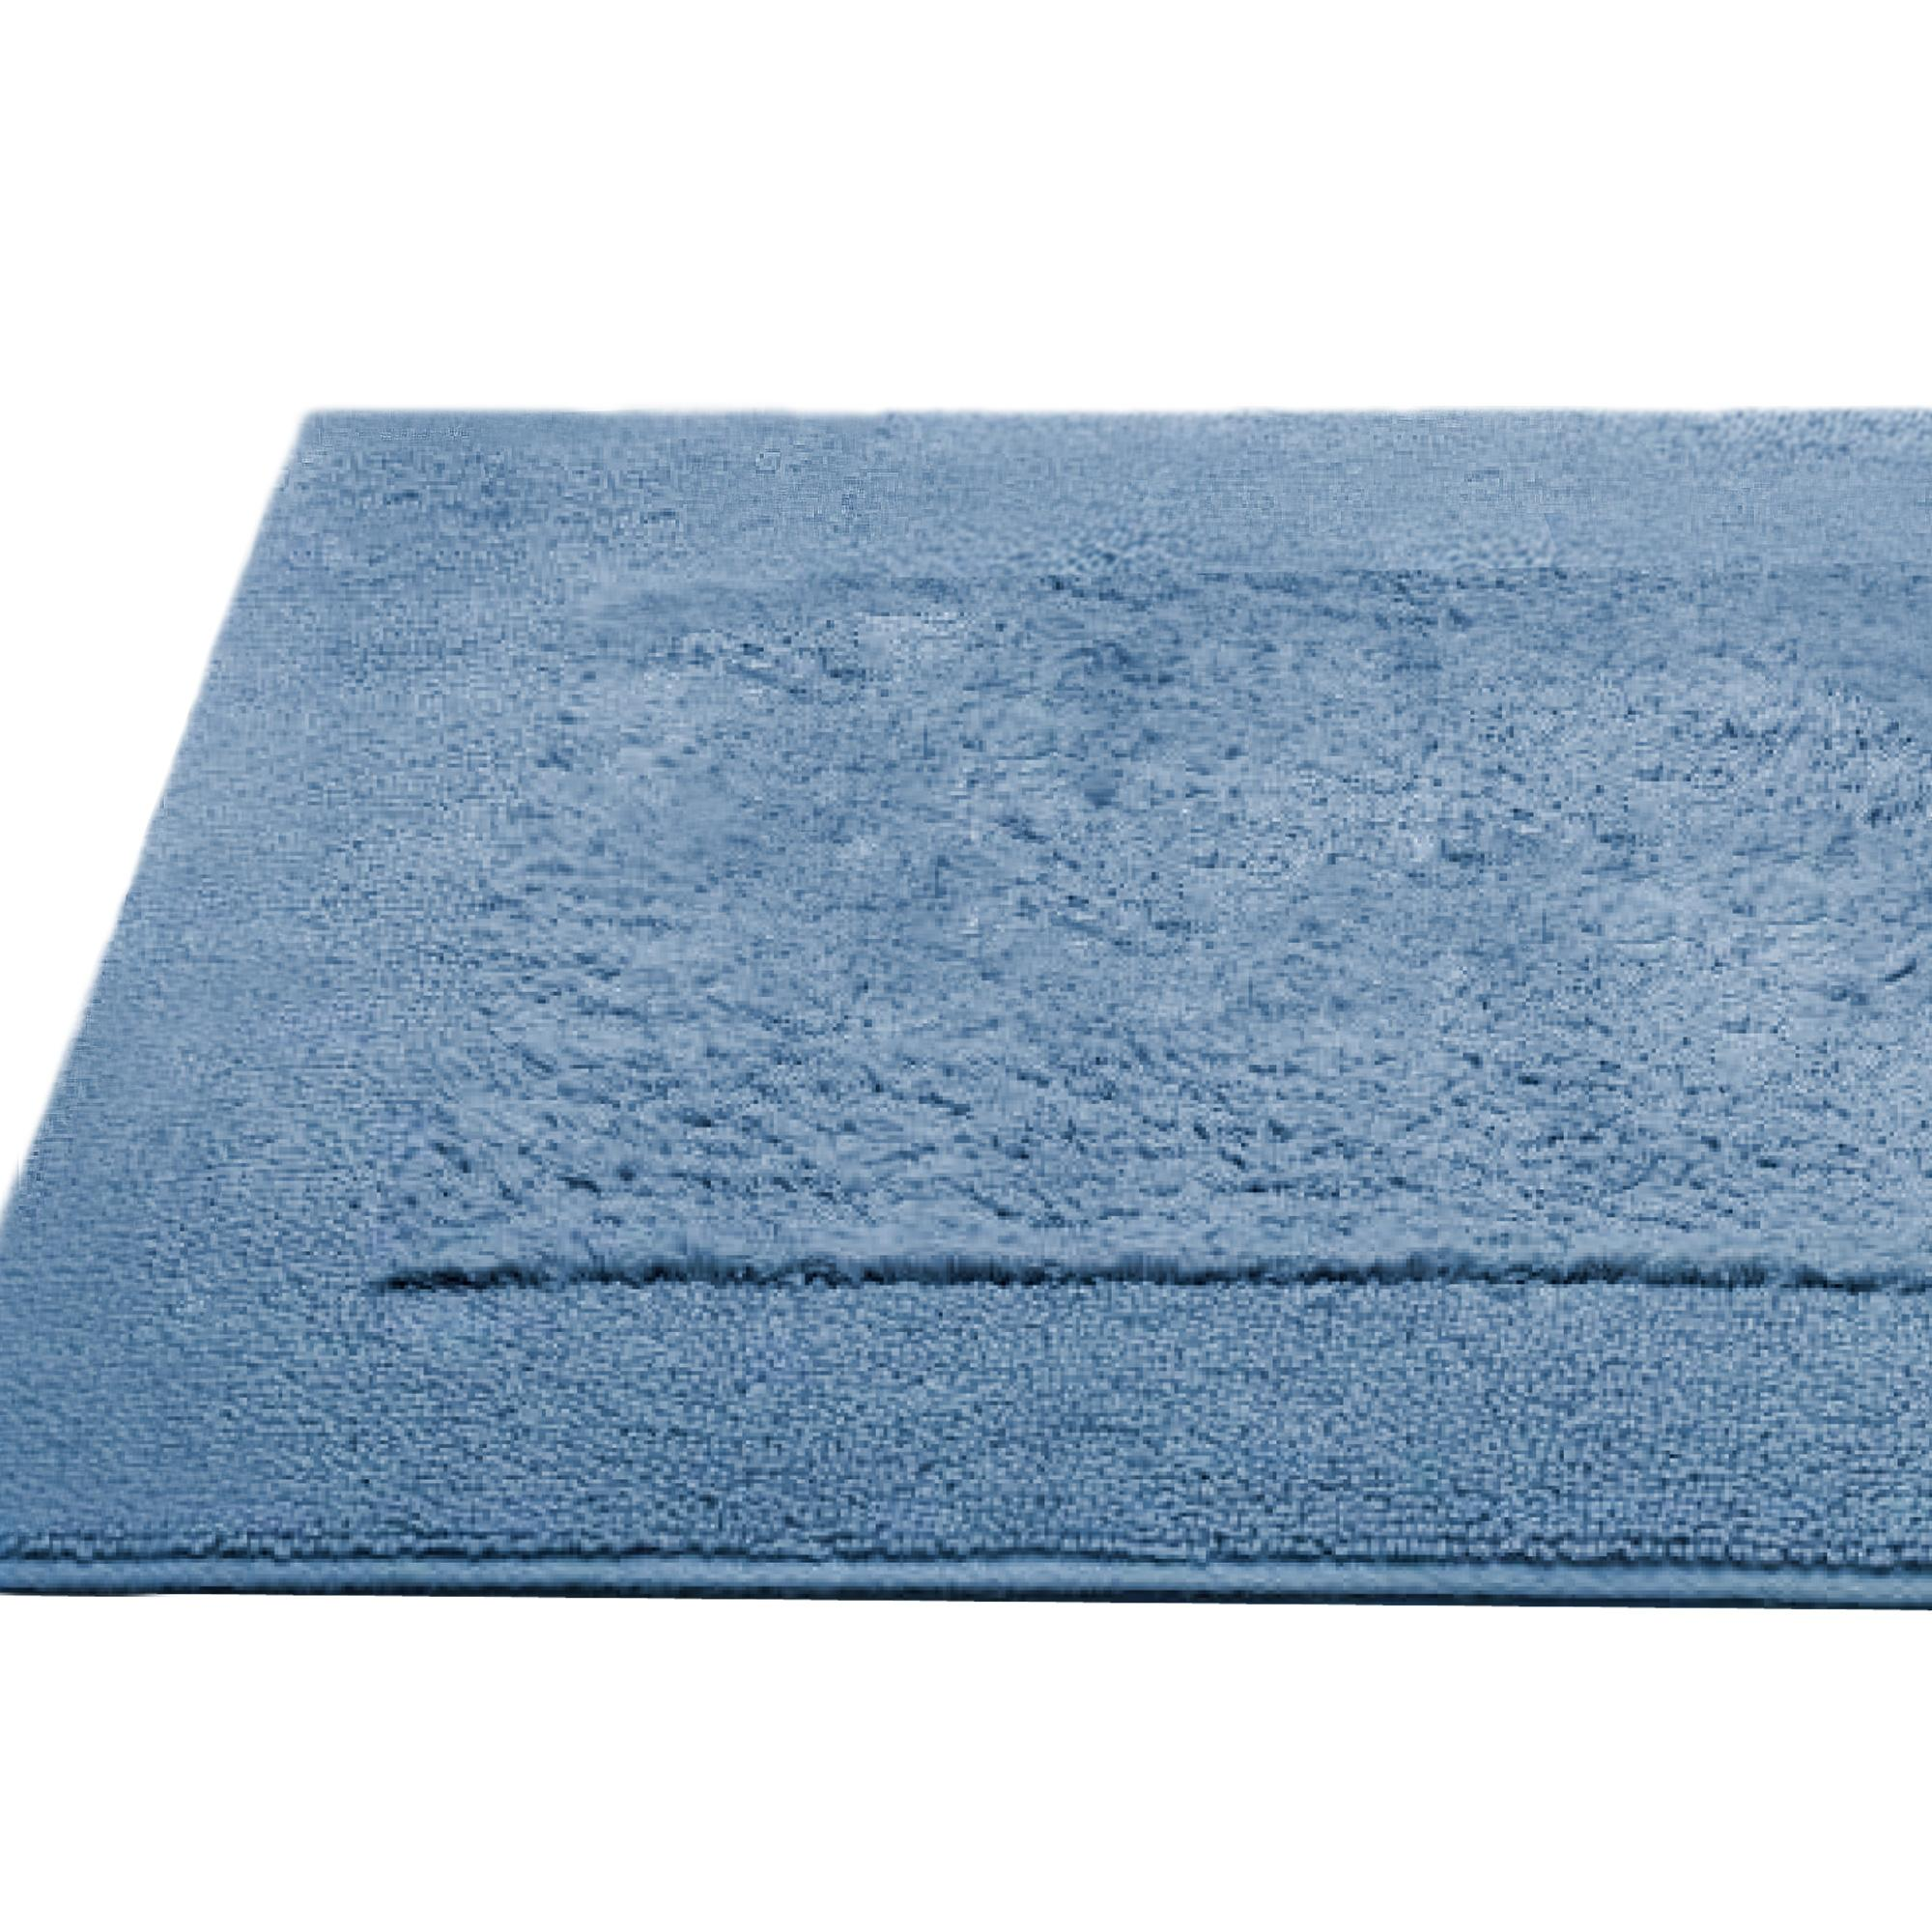 tapis de bain 70x120cm coton uni dream bleu gris linnea. Black Bedroom Furniture Sets. Home Design Ideas